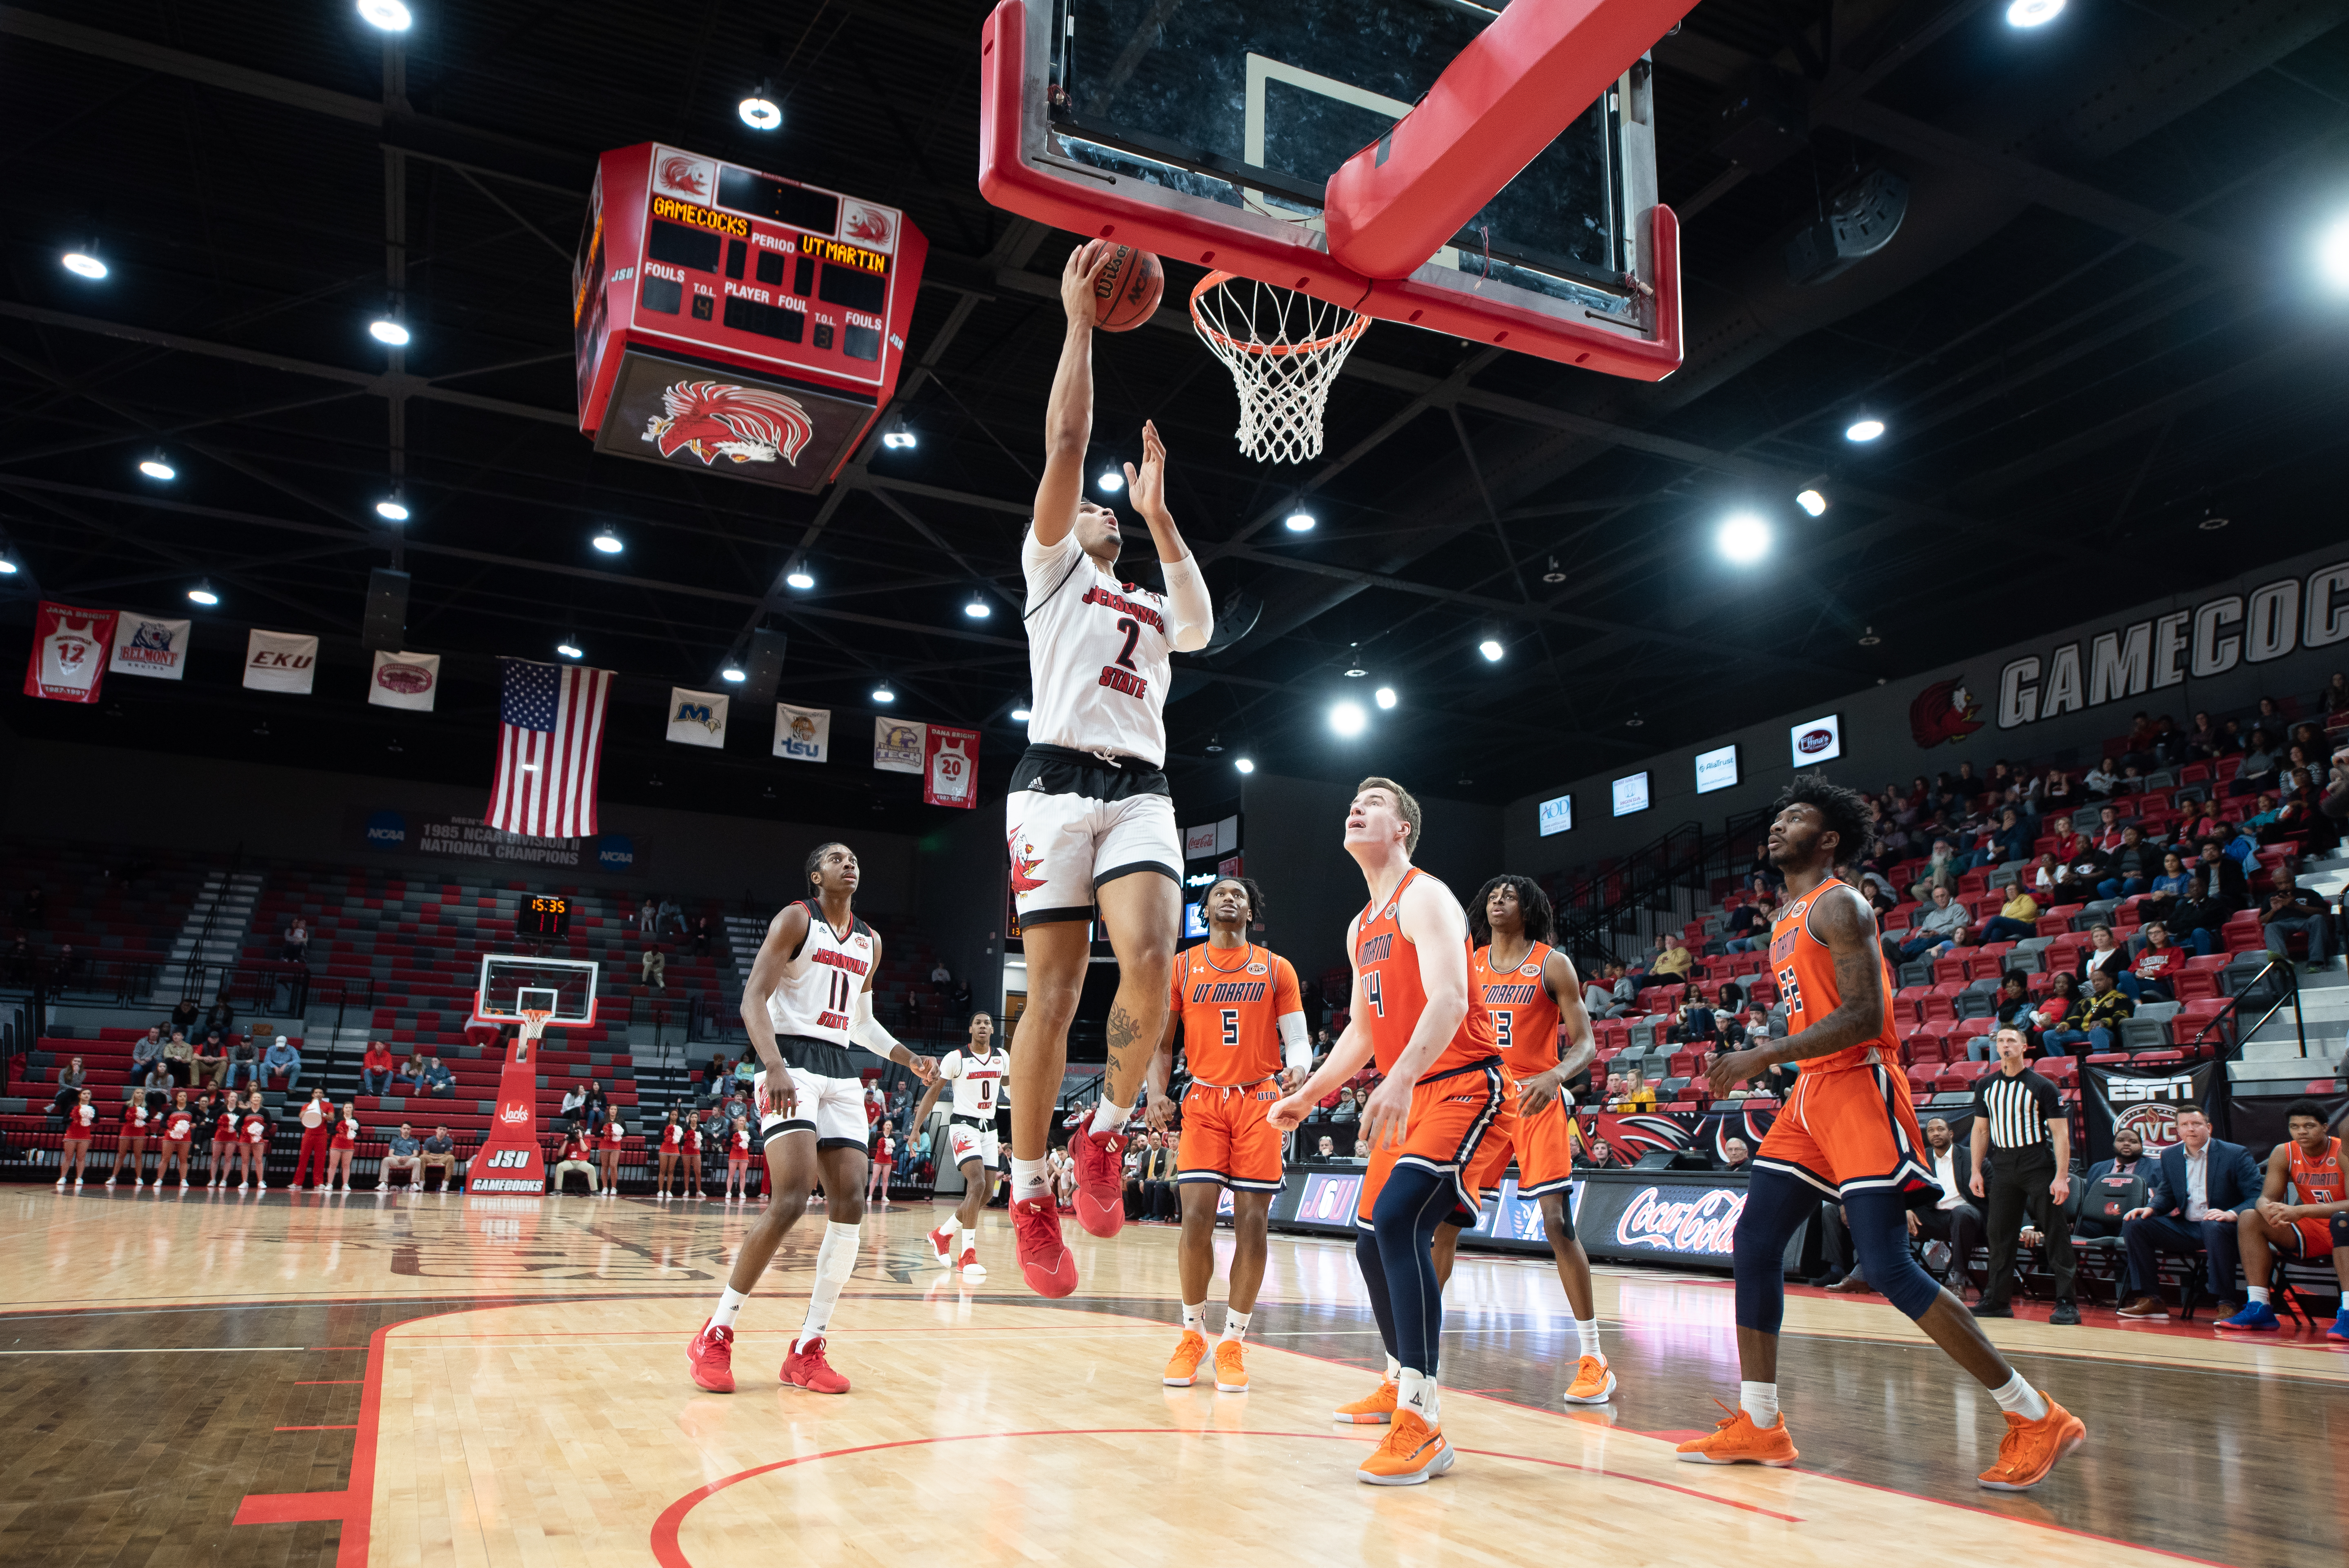 All-OVC Second team member Jacara Cross goes in for a lay up in a game against UT Martin while All-OVC Newcomer Kayne Henry watches his teammate go in for the basket. (Courtesy of JSU)